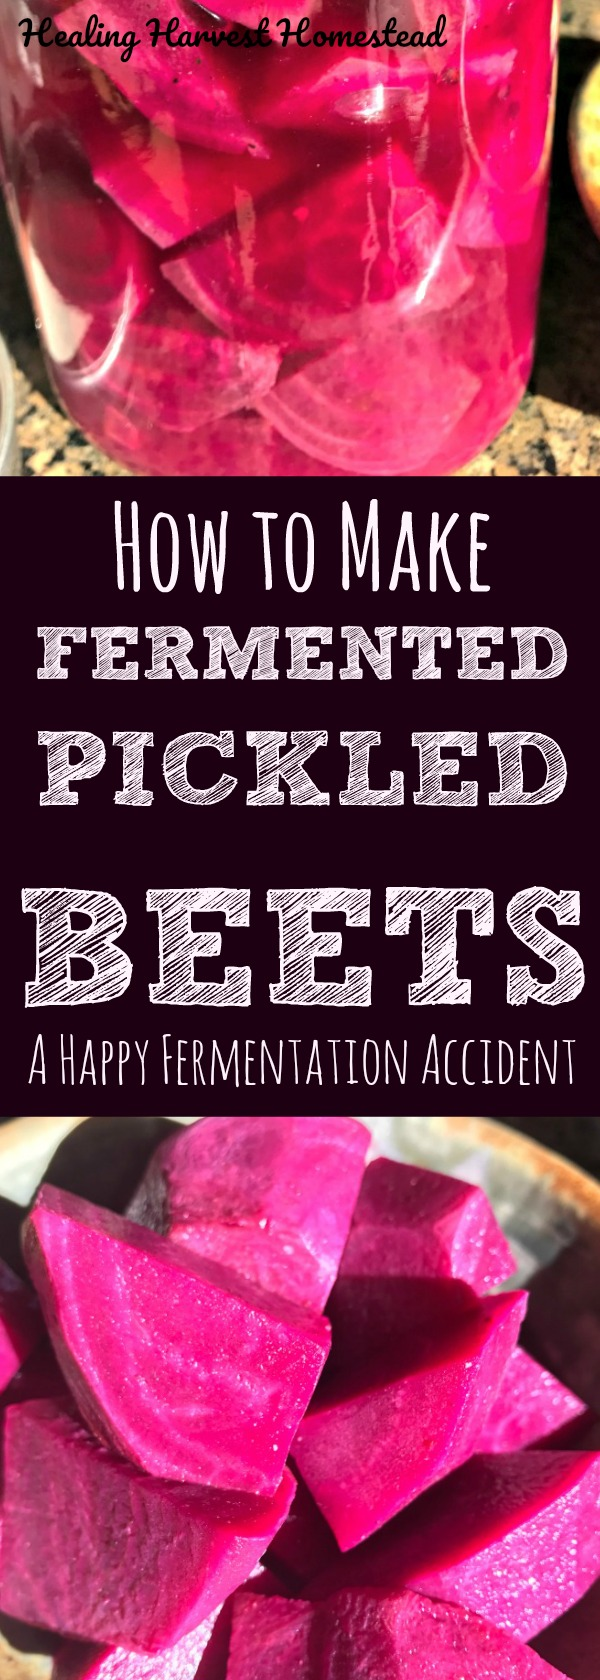 I never thought about fermenting beets for actual use---except to make beet kvass (a delicious probiotic traditional Russian drink), but I had a happy fermentation accident! Here's how to make soft, delicious fermented pickled beets! Find out how to ferment your beets!